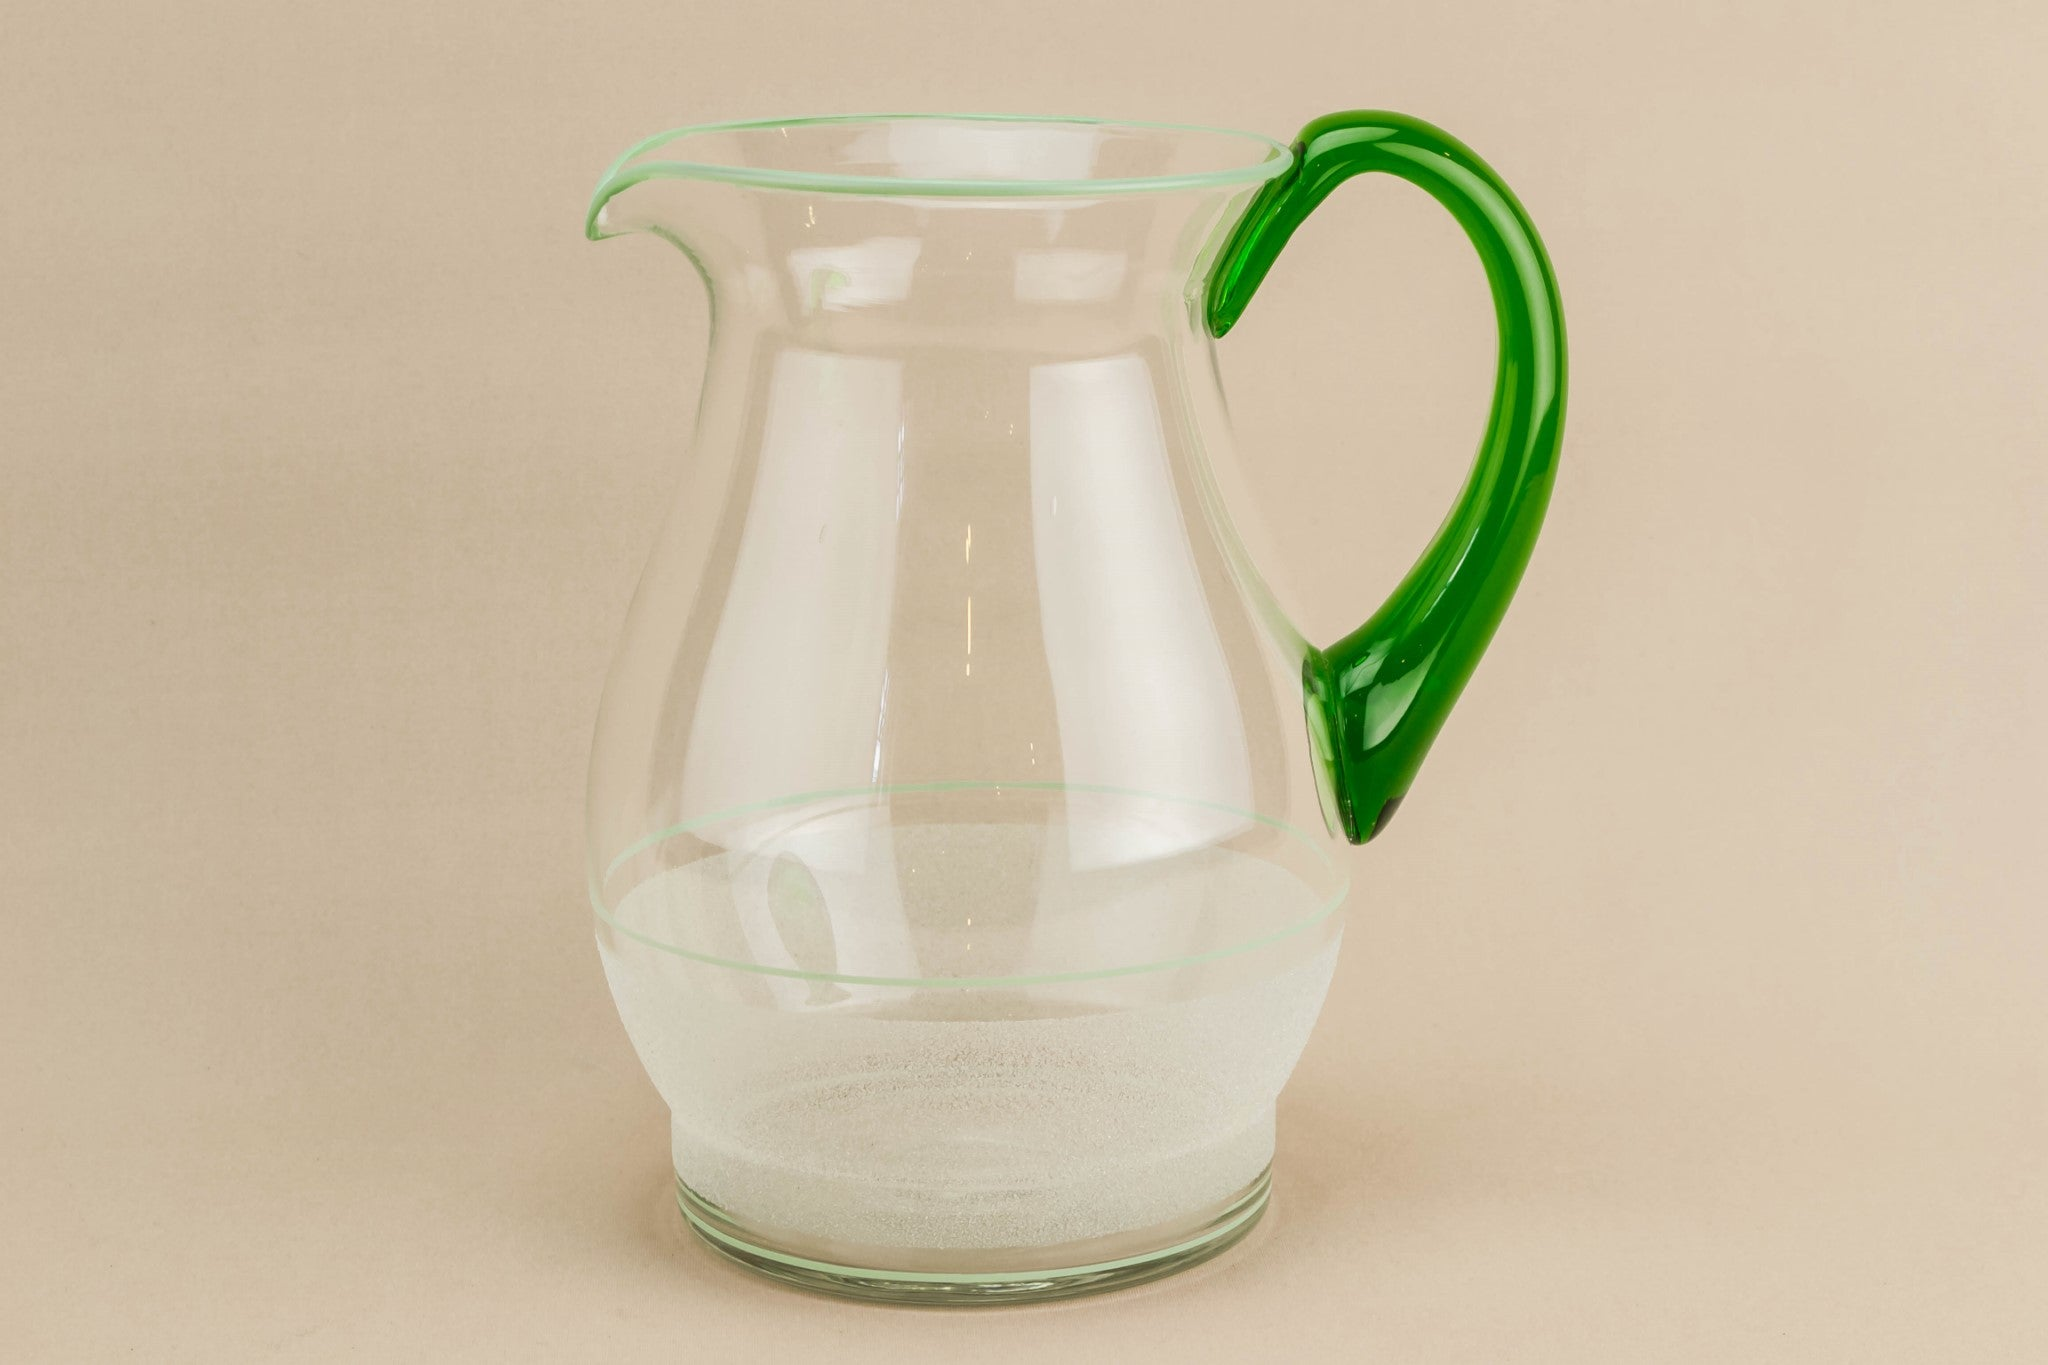 Green glass water jug